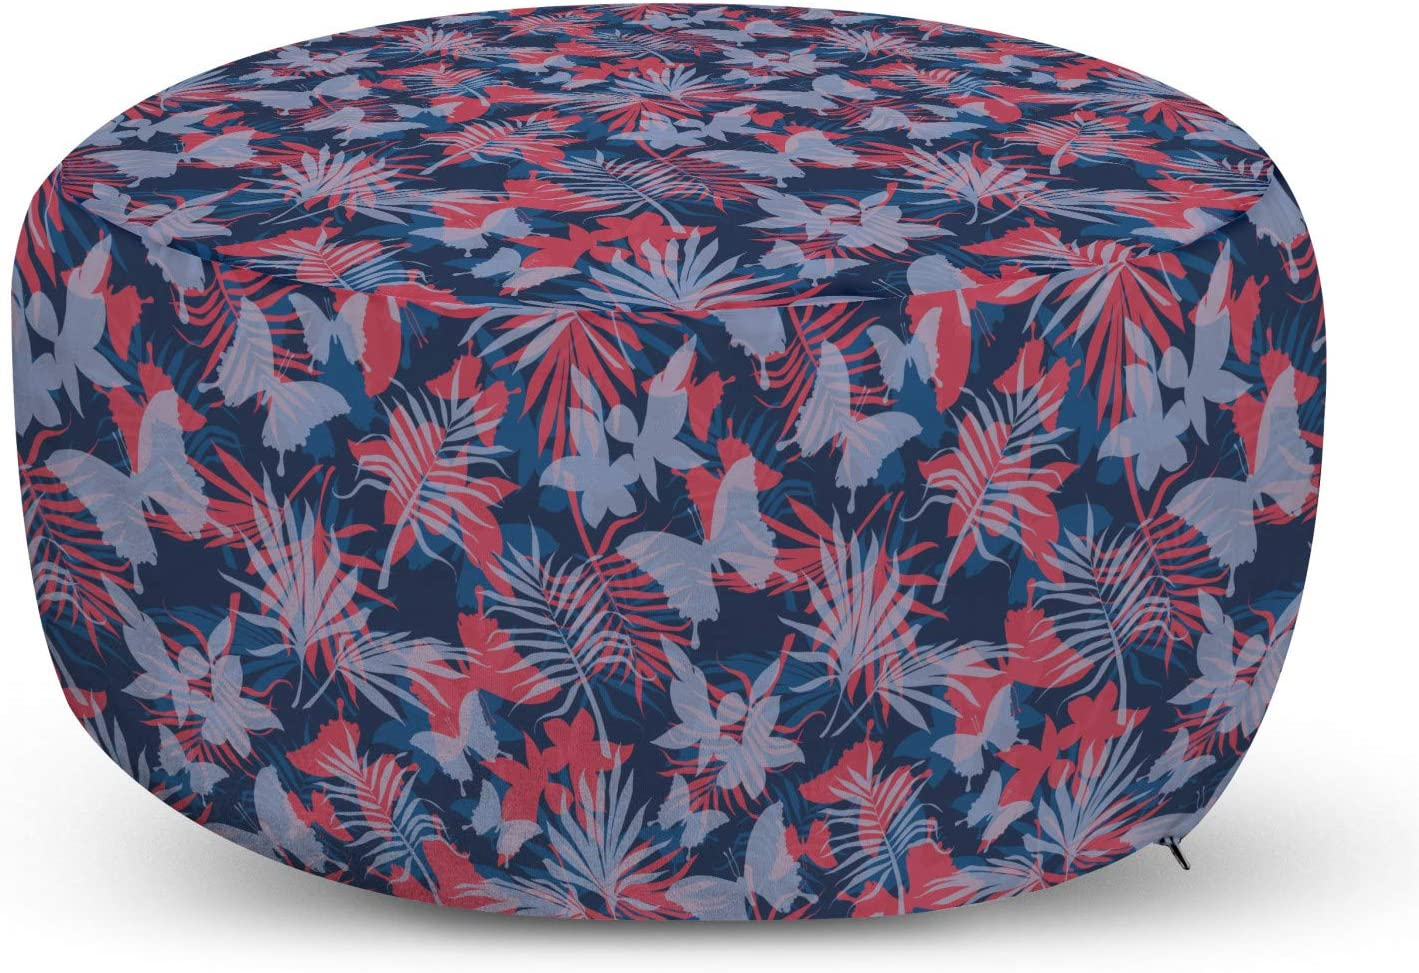 Lunarable Tropical Ottoman Pouf, Exotic Leaves Monstera Fan Palm Butterflies Eco Paradise Jungle Foliage, Decorative Soft Foot Rest with Removable Cover Living Room and Bedroom, Blue Coral